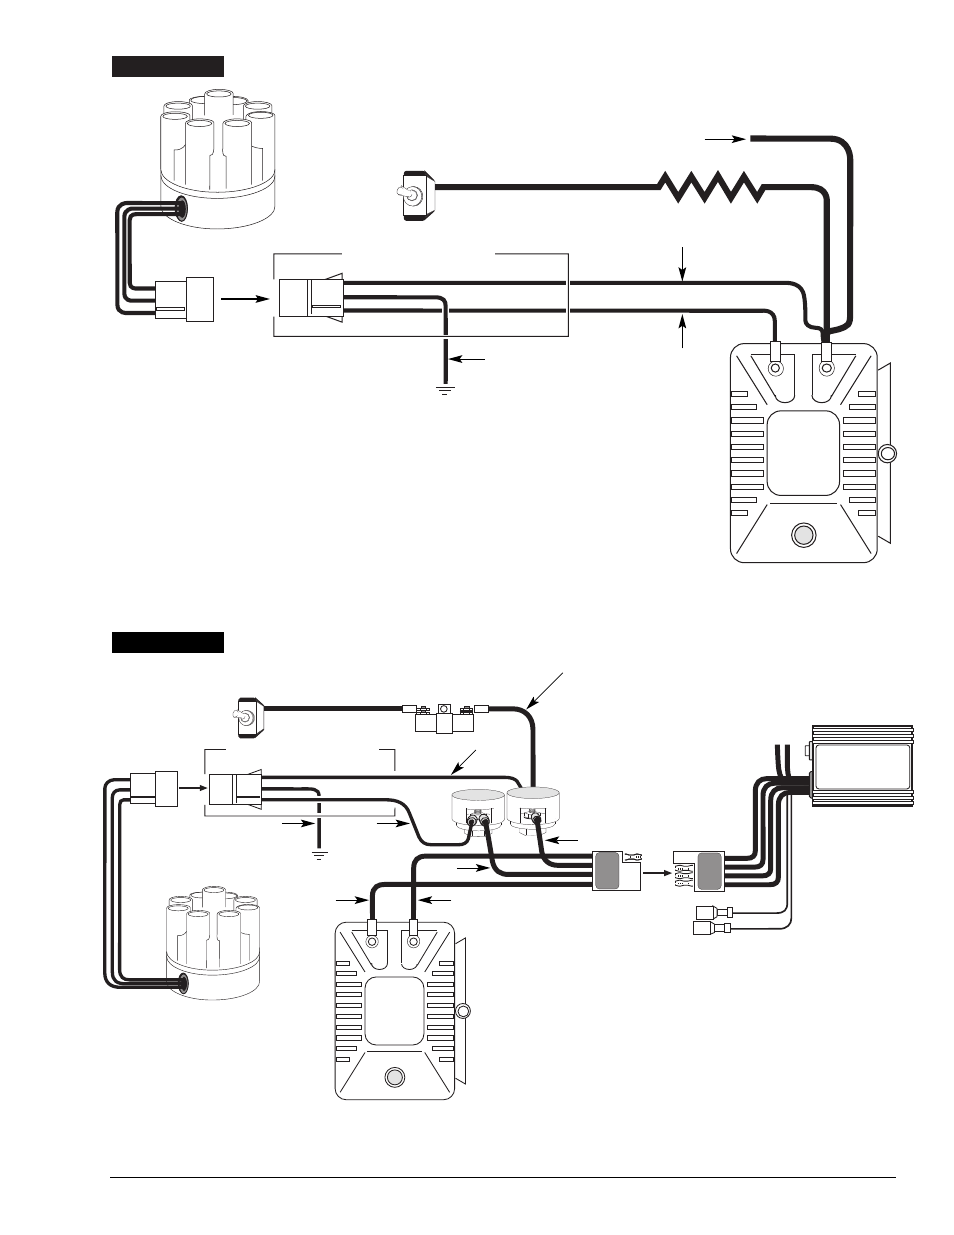 Mallory 8548201 Hei Wiring Diagram Guide And Troubleshooting Of Gm Install Diagrams One Rh 50 Moikensmarmelaedchen De Module Distributor